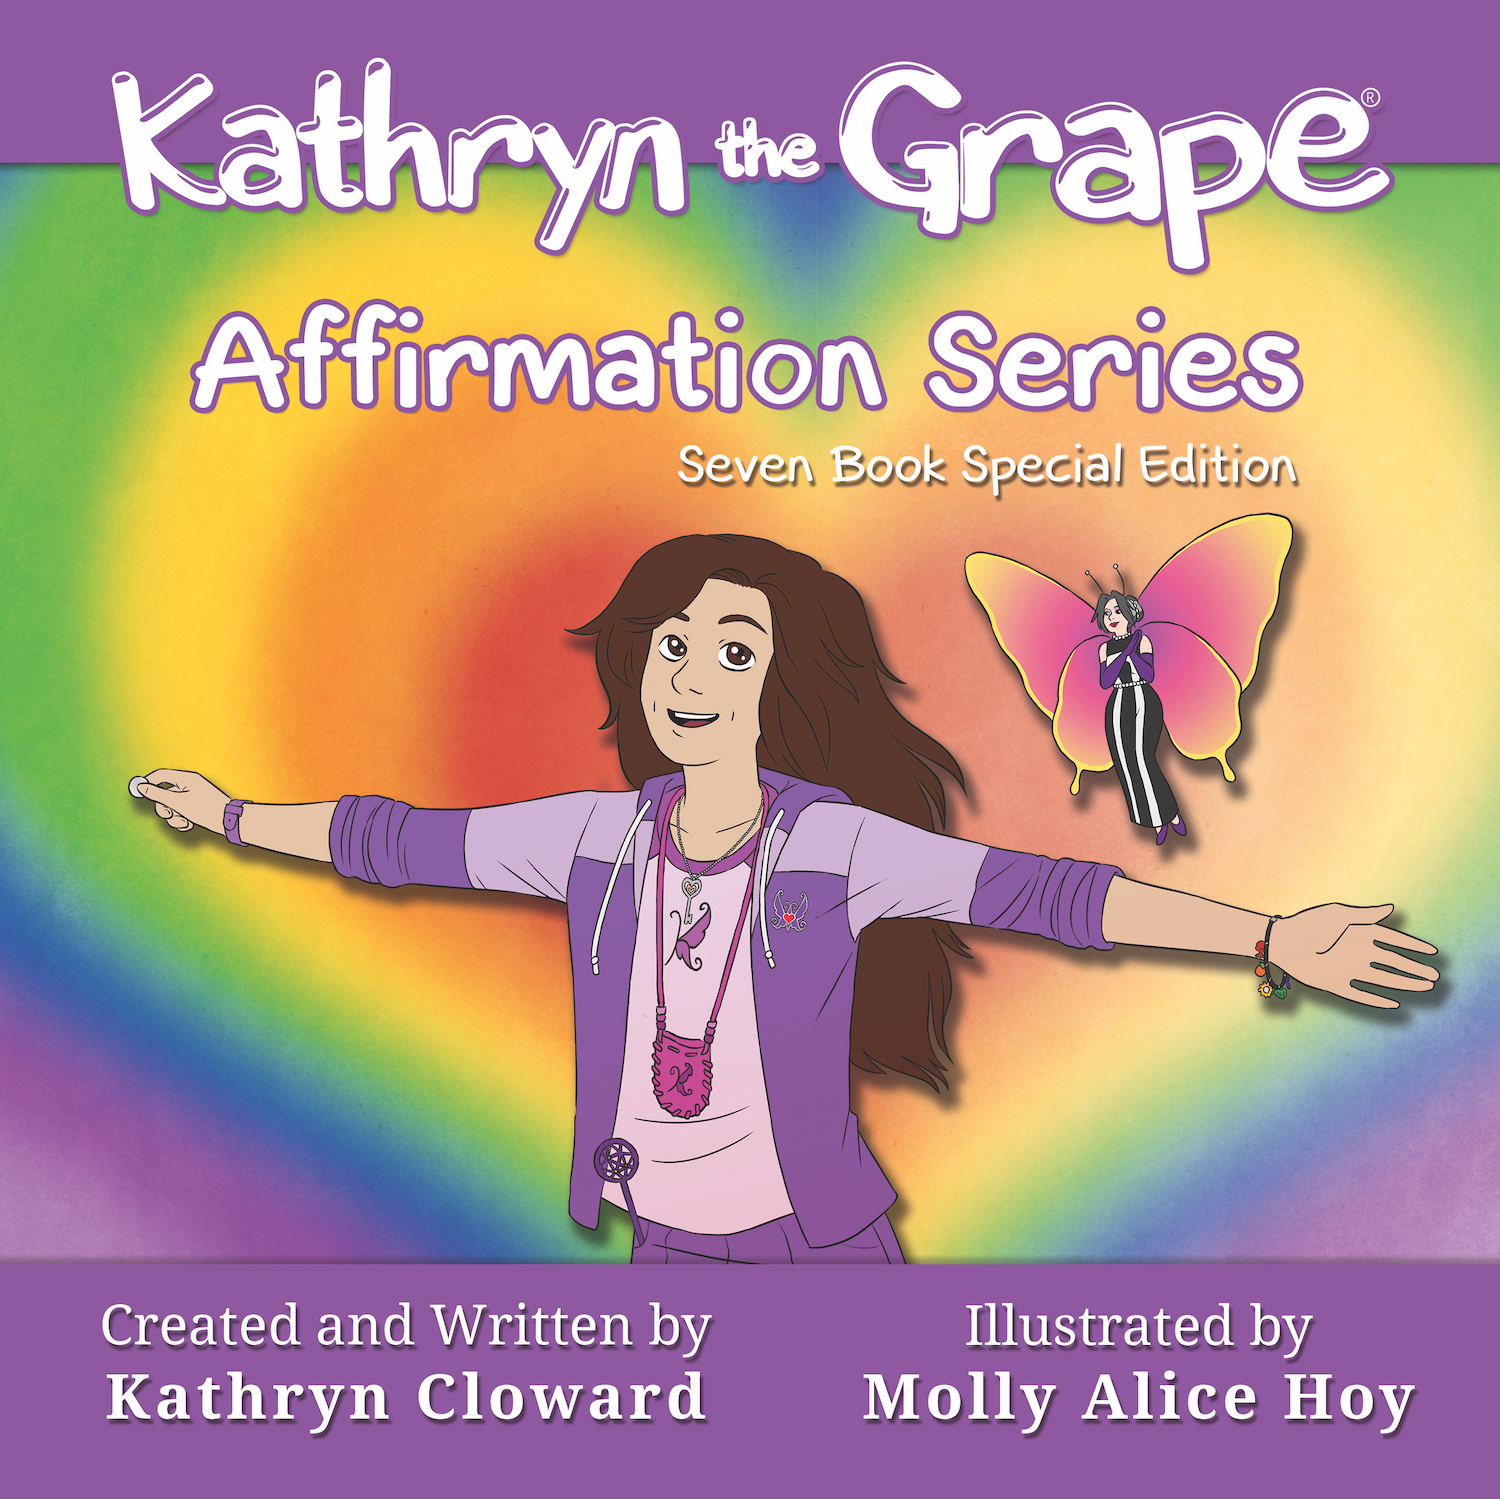 Kathryn the Grape Affirmation Series Seven Book Special Edition by Kathryn Cloward